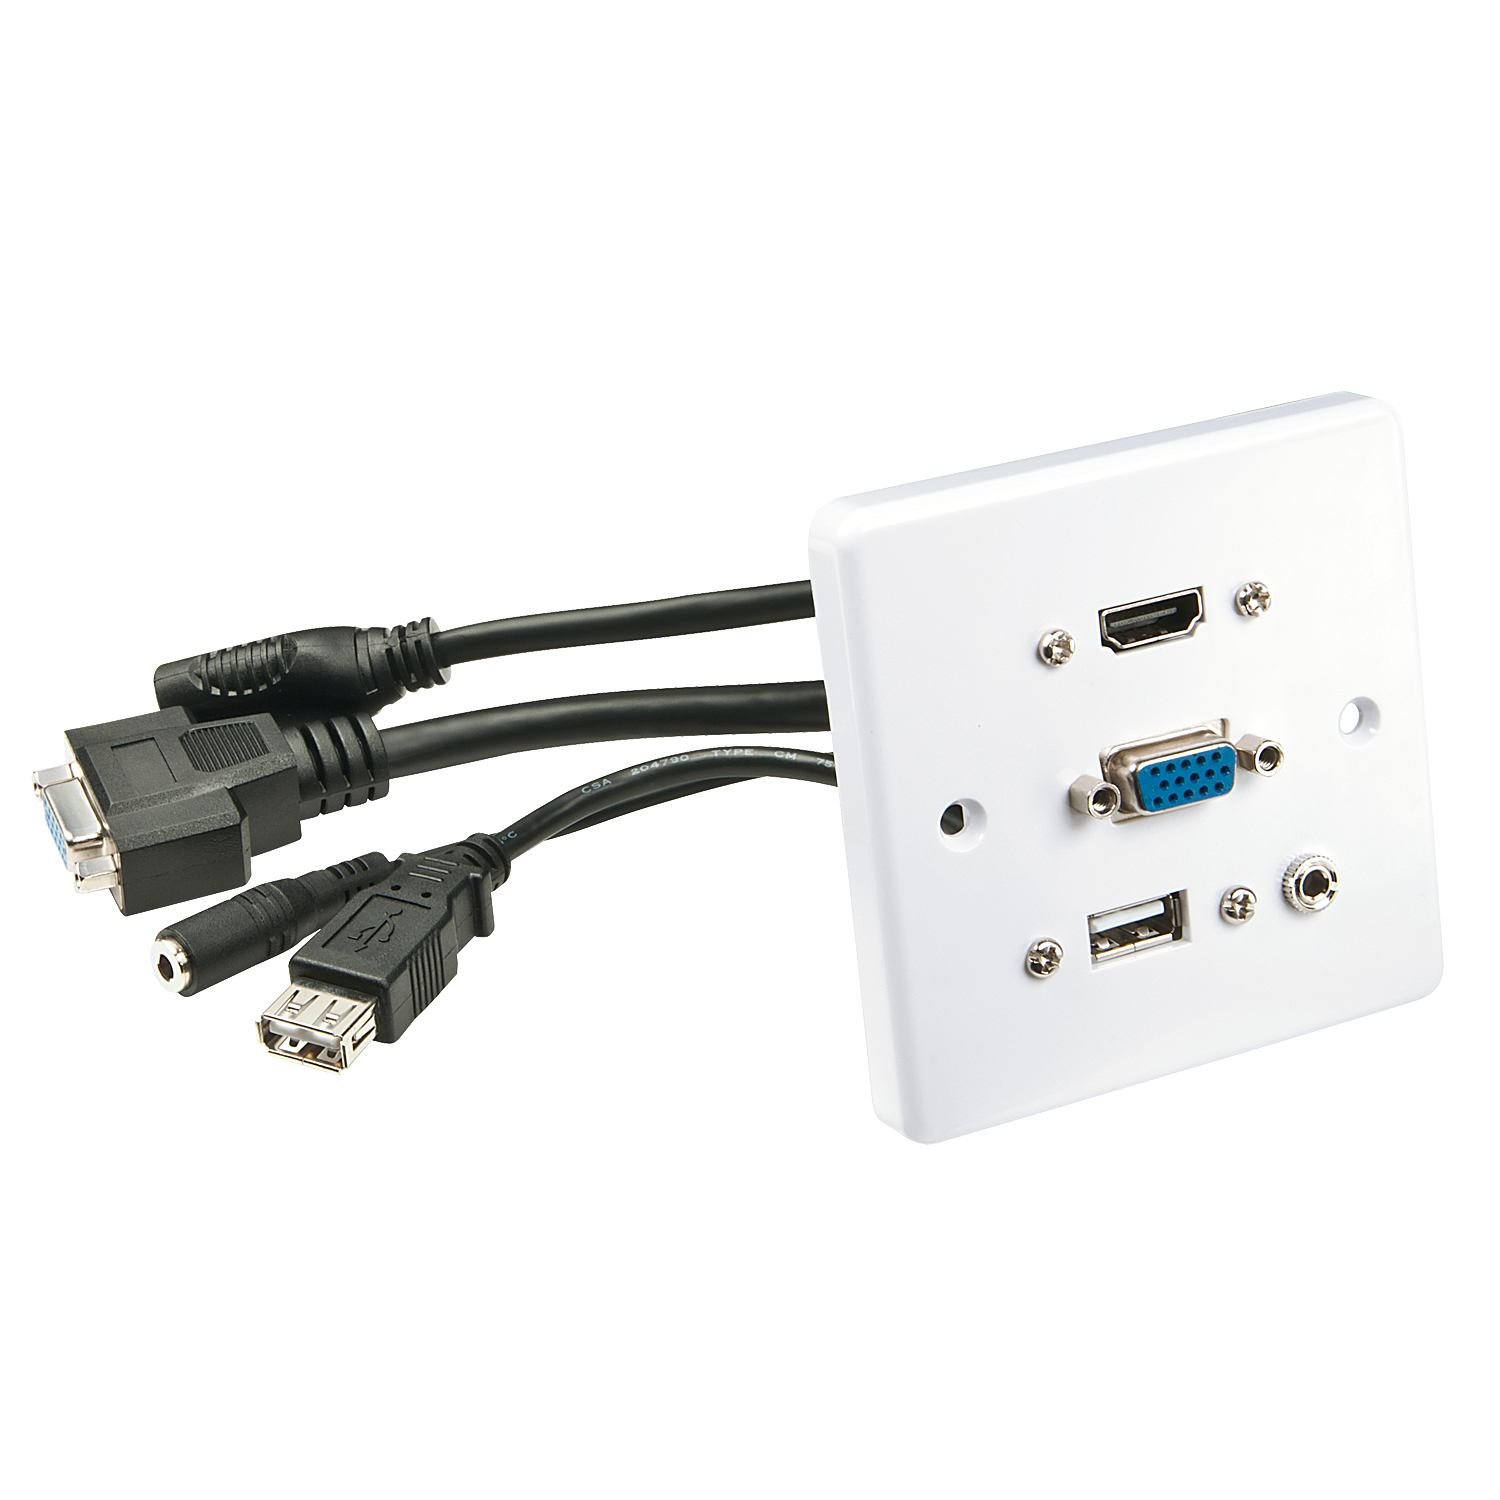 Hdmi Outlet Lindy 60220 Socket Outlet Hdmi Vga Usb A 3 5mm White